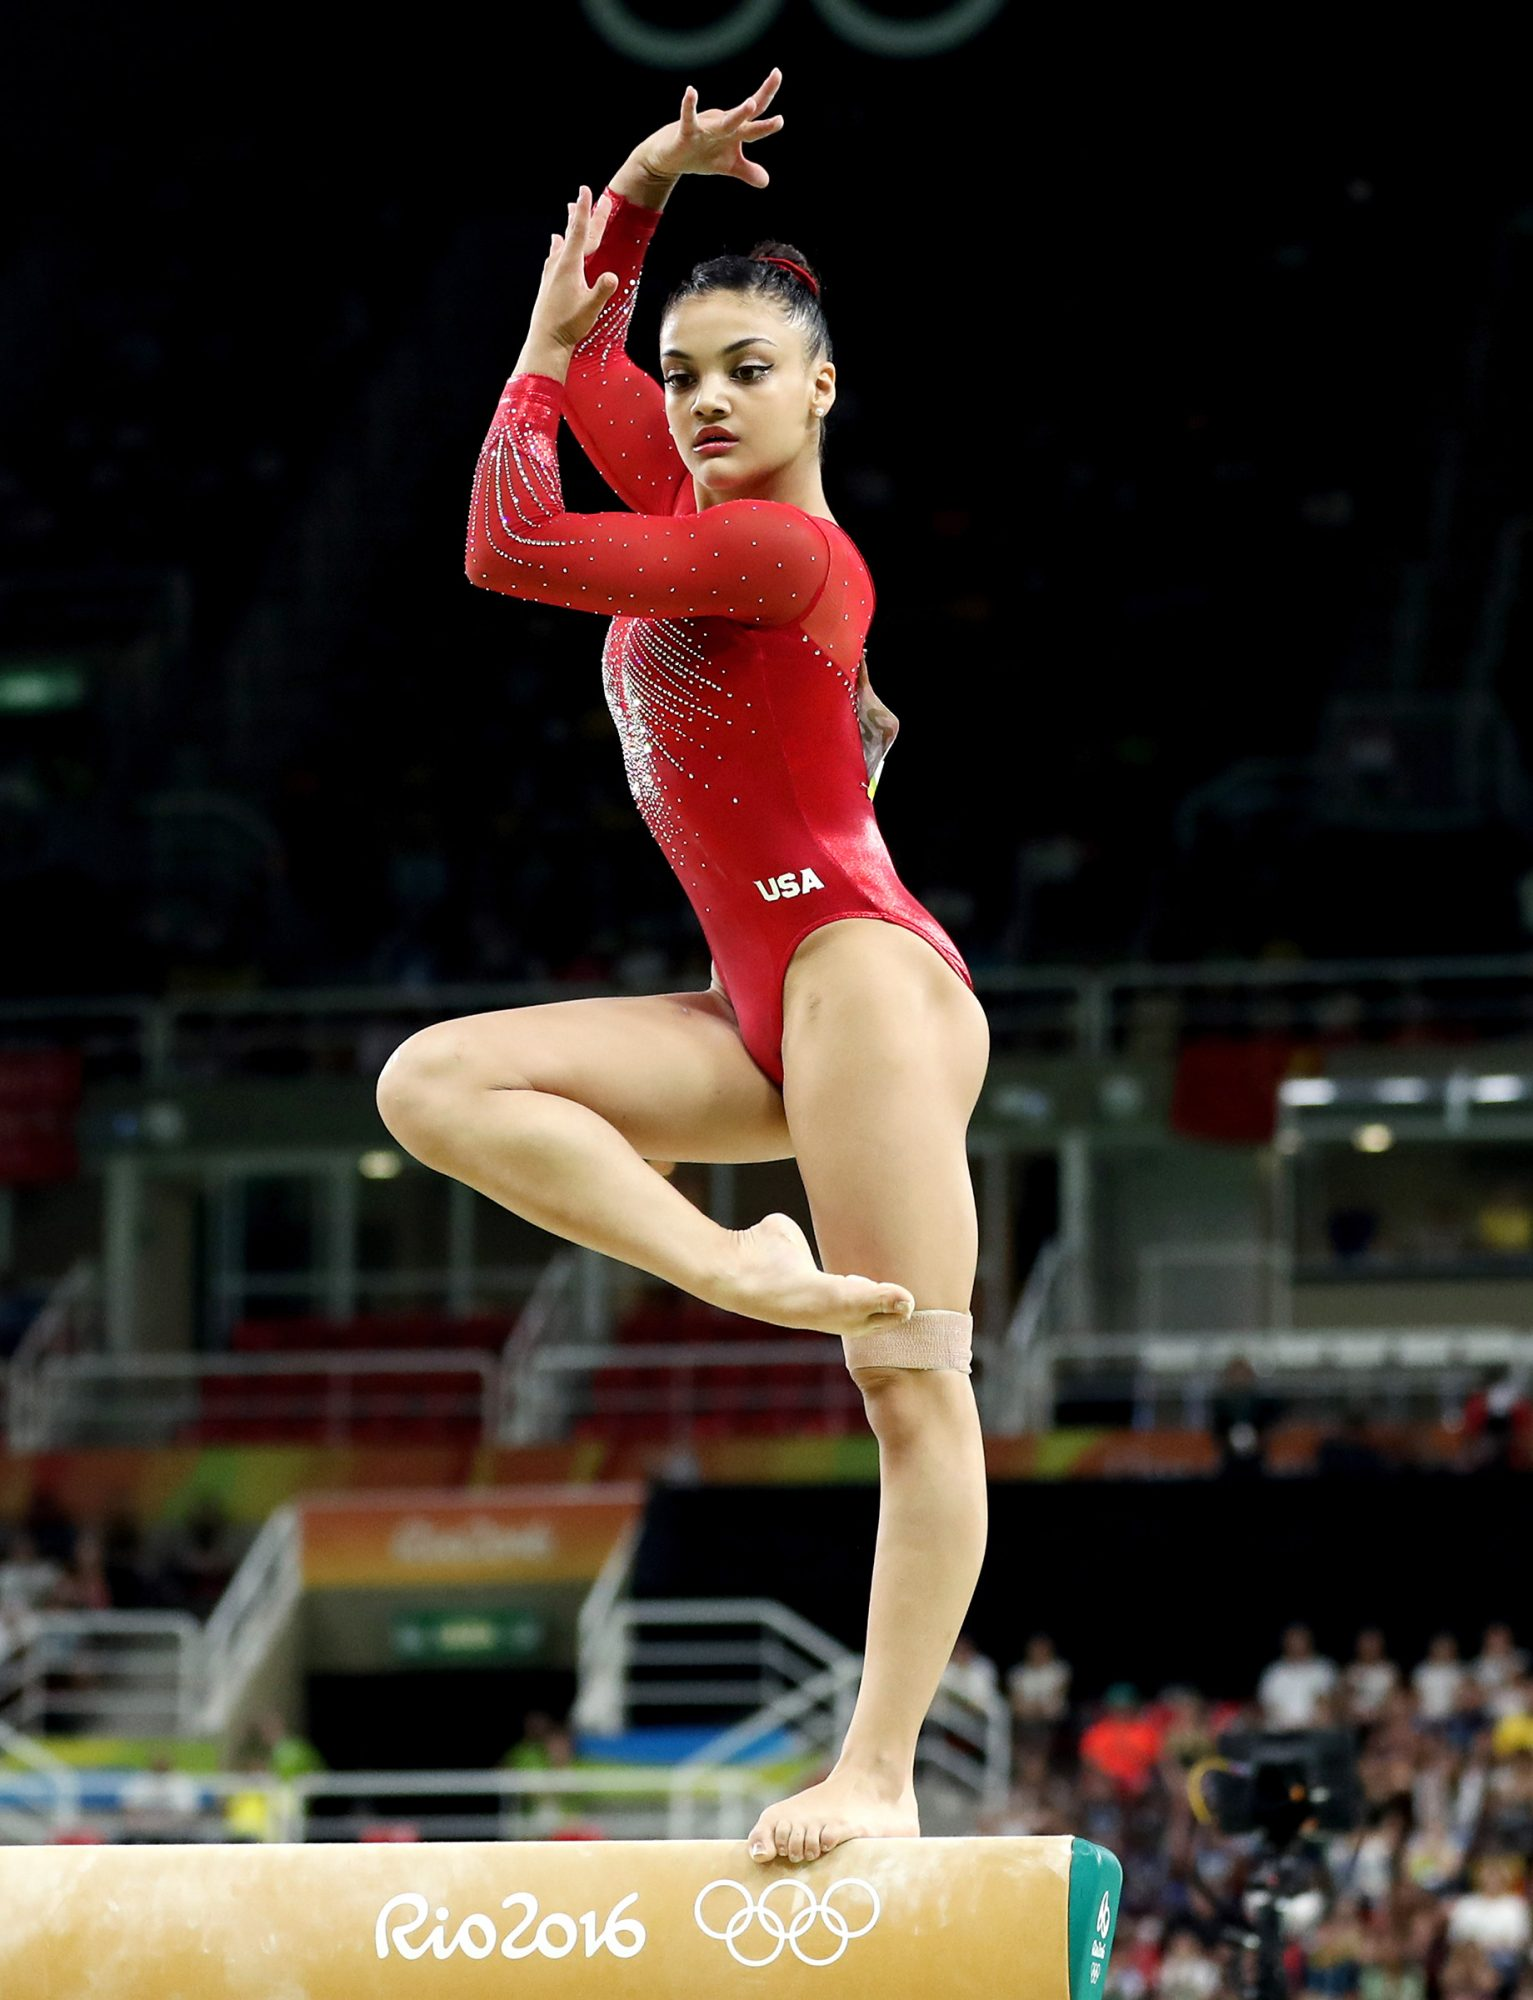 Lauren Hernandez of the United States competes in the Balance Beam Final on day 10 of the Rio 2016 Olympic Games at Rio Olympic Arena on August 15, 2016 in Rio de Janeiro, Brazil